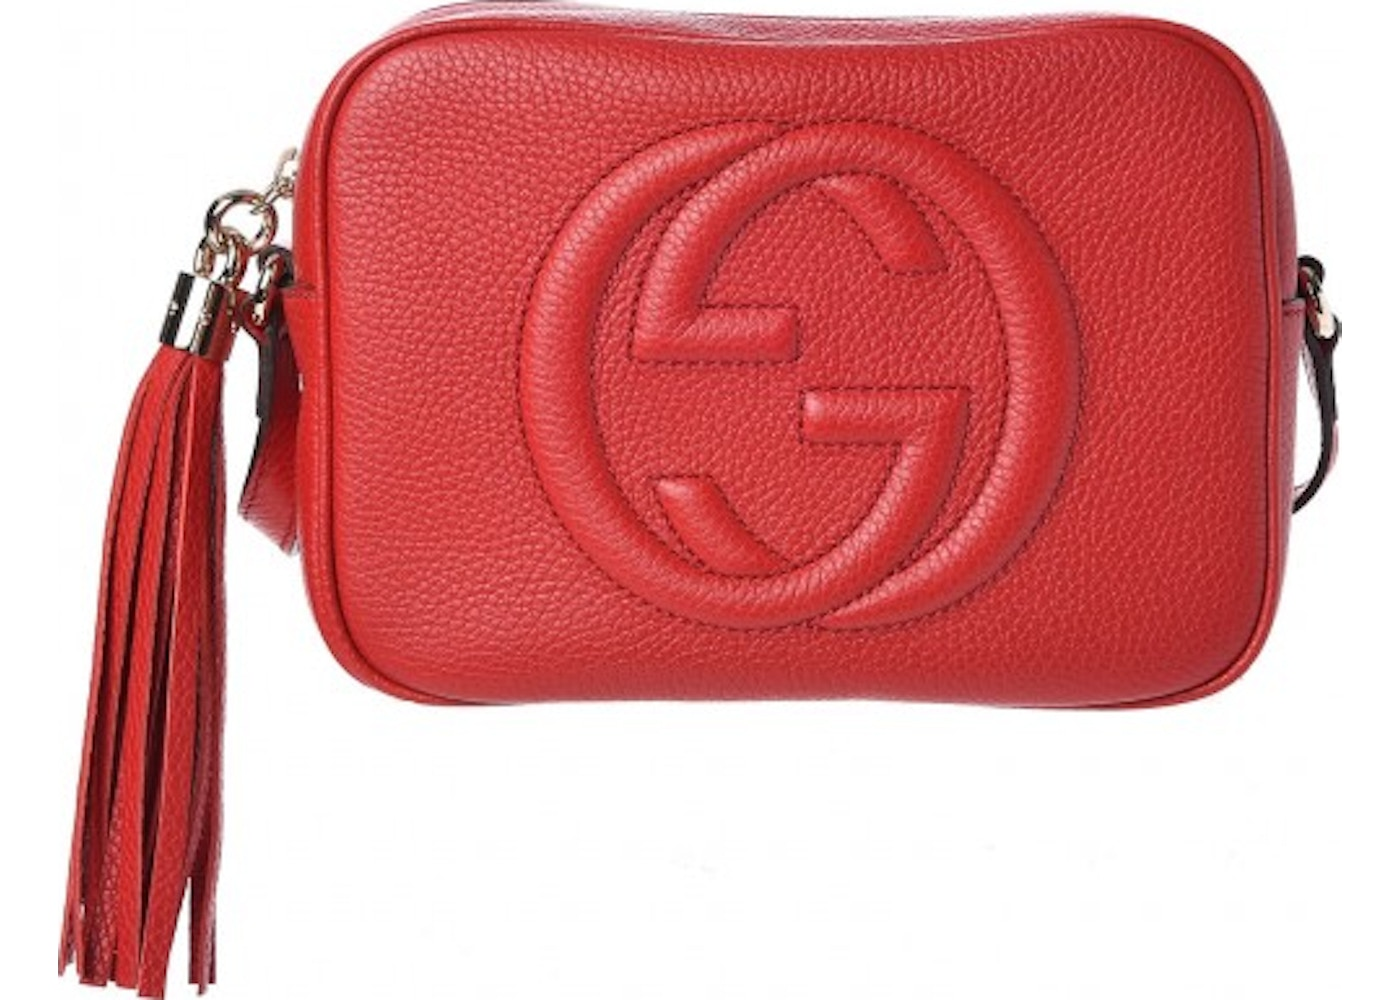 1c40c543e4712 Gucci Soho Disco Shoulder Bag Small Tabasco Red. Small Tabasco Red